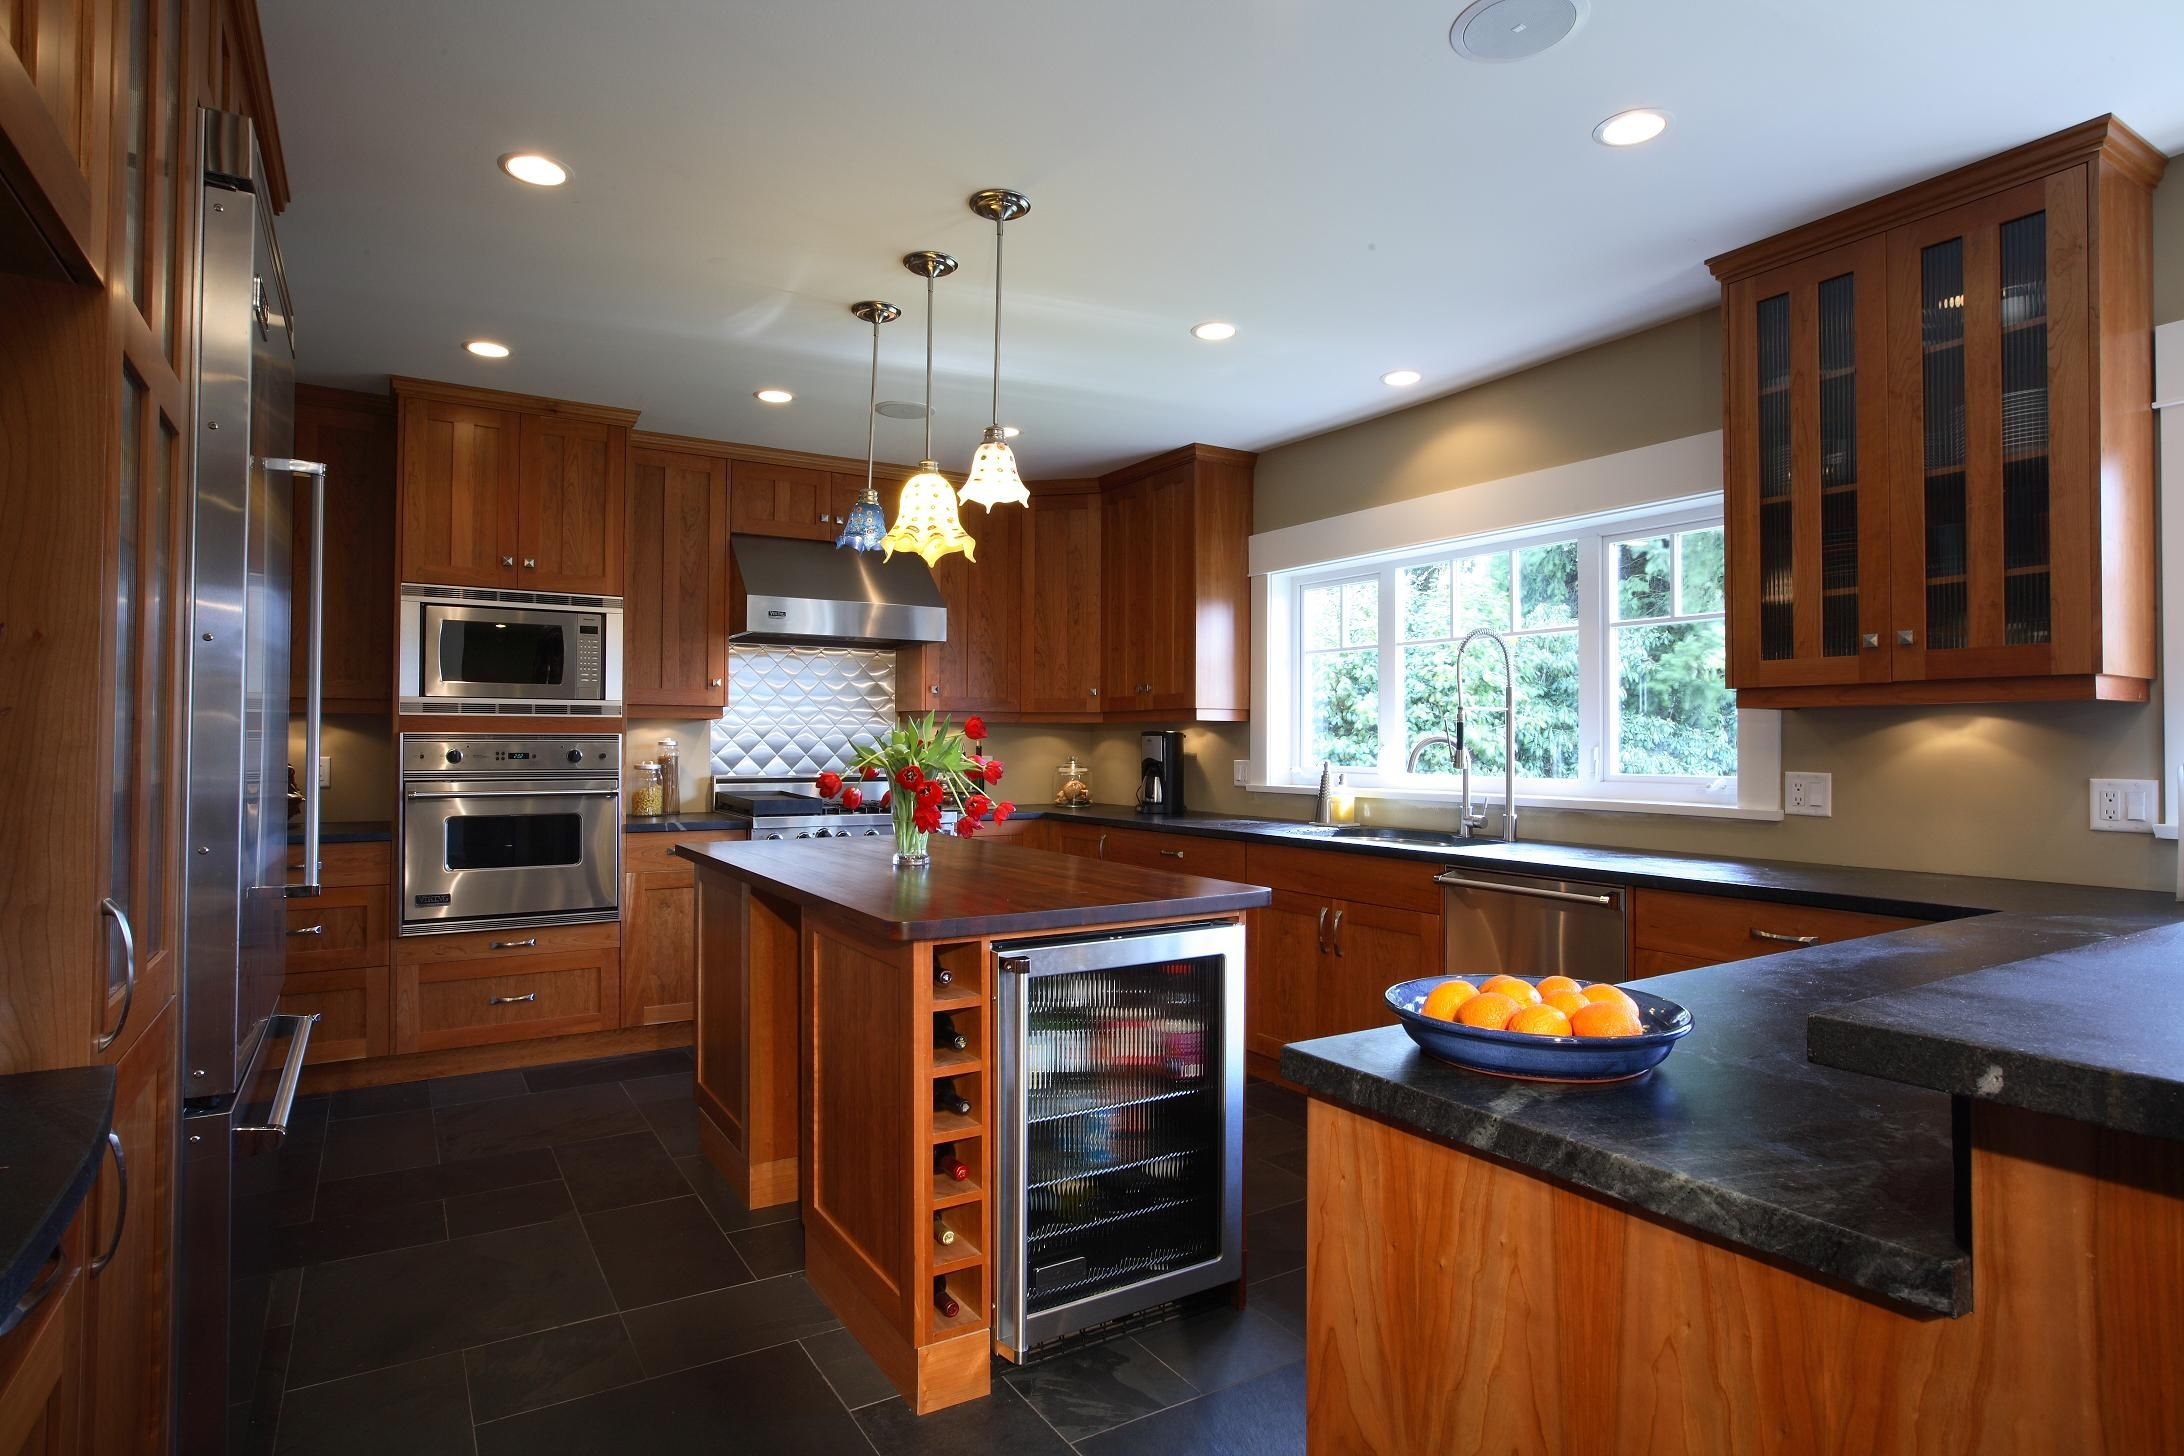 Renovated transitional/traditional kitchen